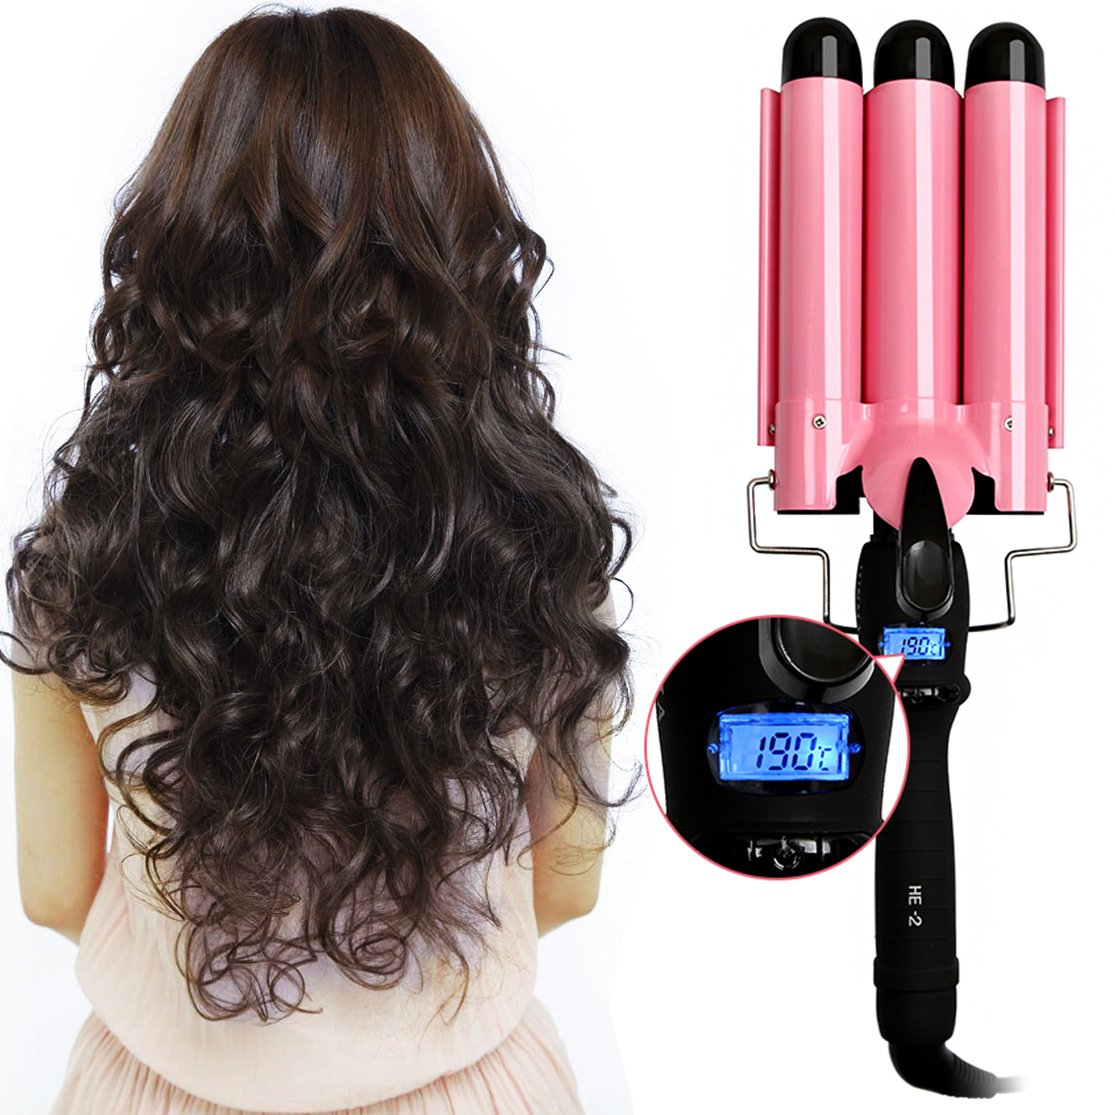 Three Barrel Curling Iron Quick Heated Ceramic Curling Wand Professional Hair Styler Hair Curlers, Black Pink2